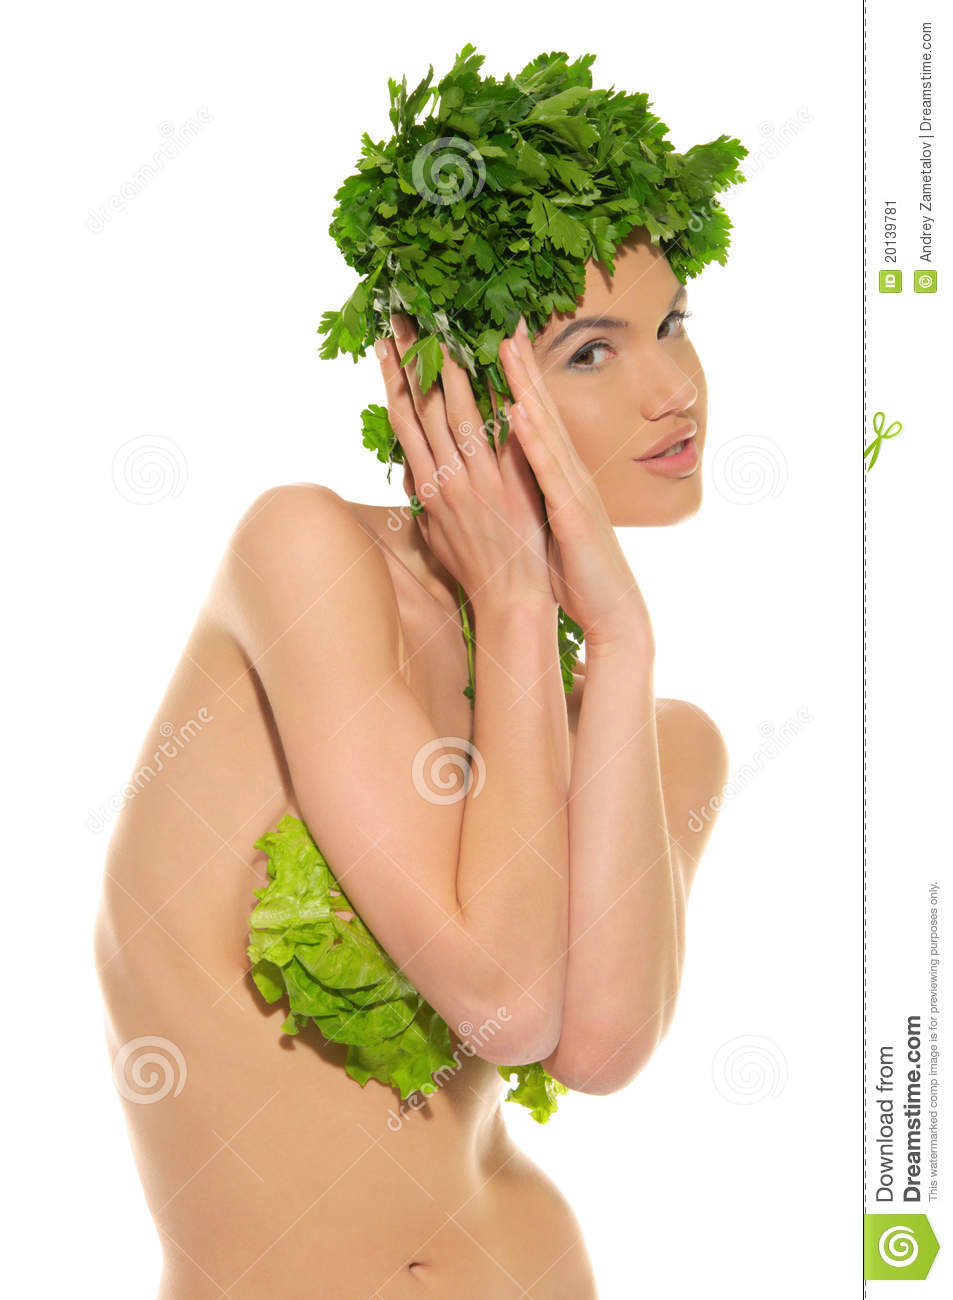 hot nude women with vegetables